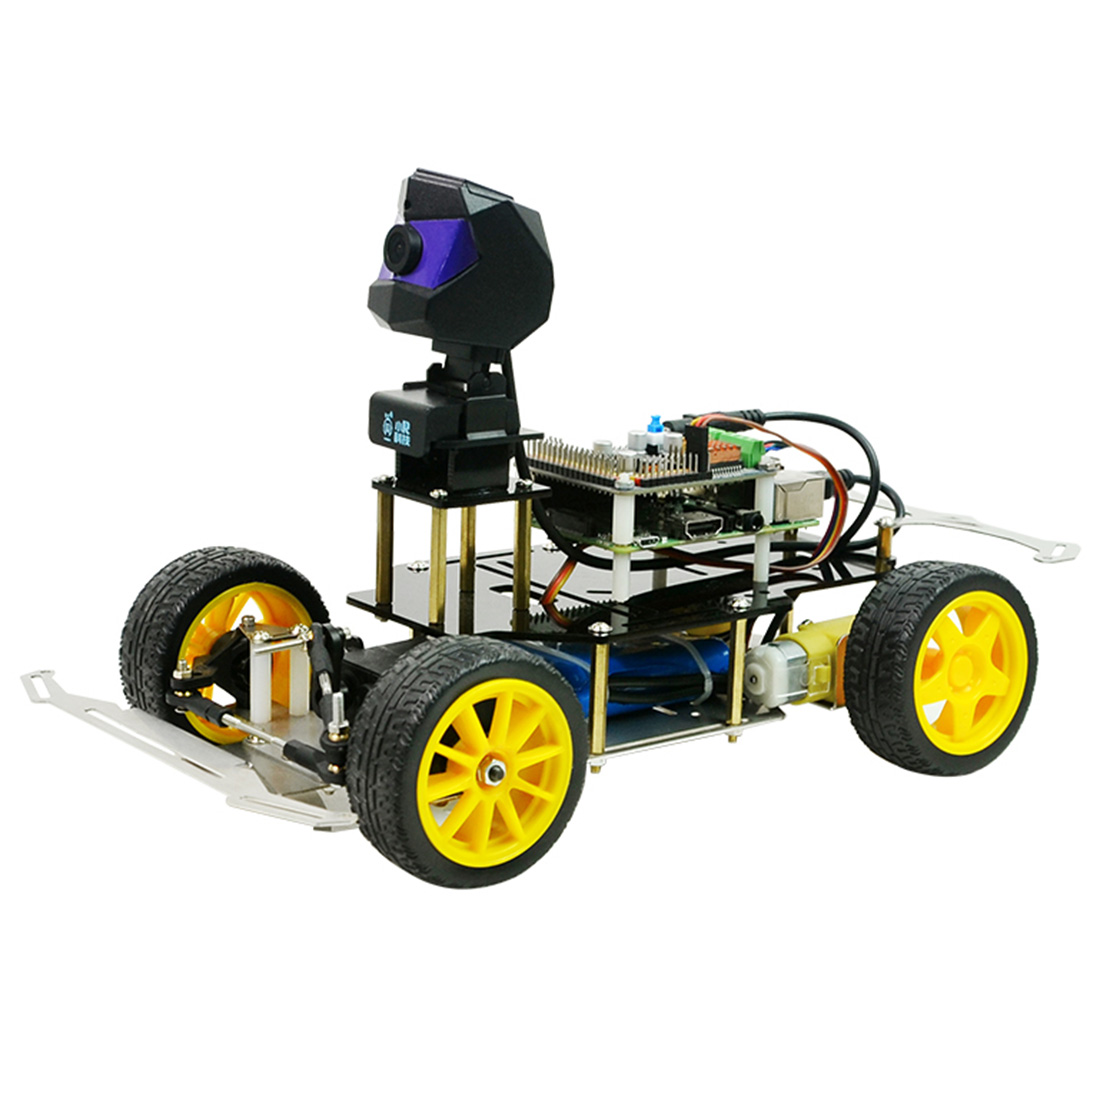 Donkey Car Smart AI Line Follower Robot Opensource DIY Self Driving Platform For Raspberry Pi RC Car Programmable Toys Kids Gift